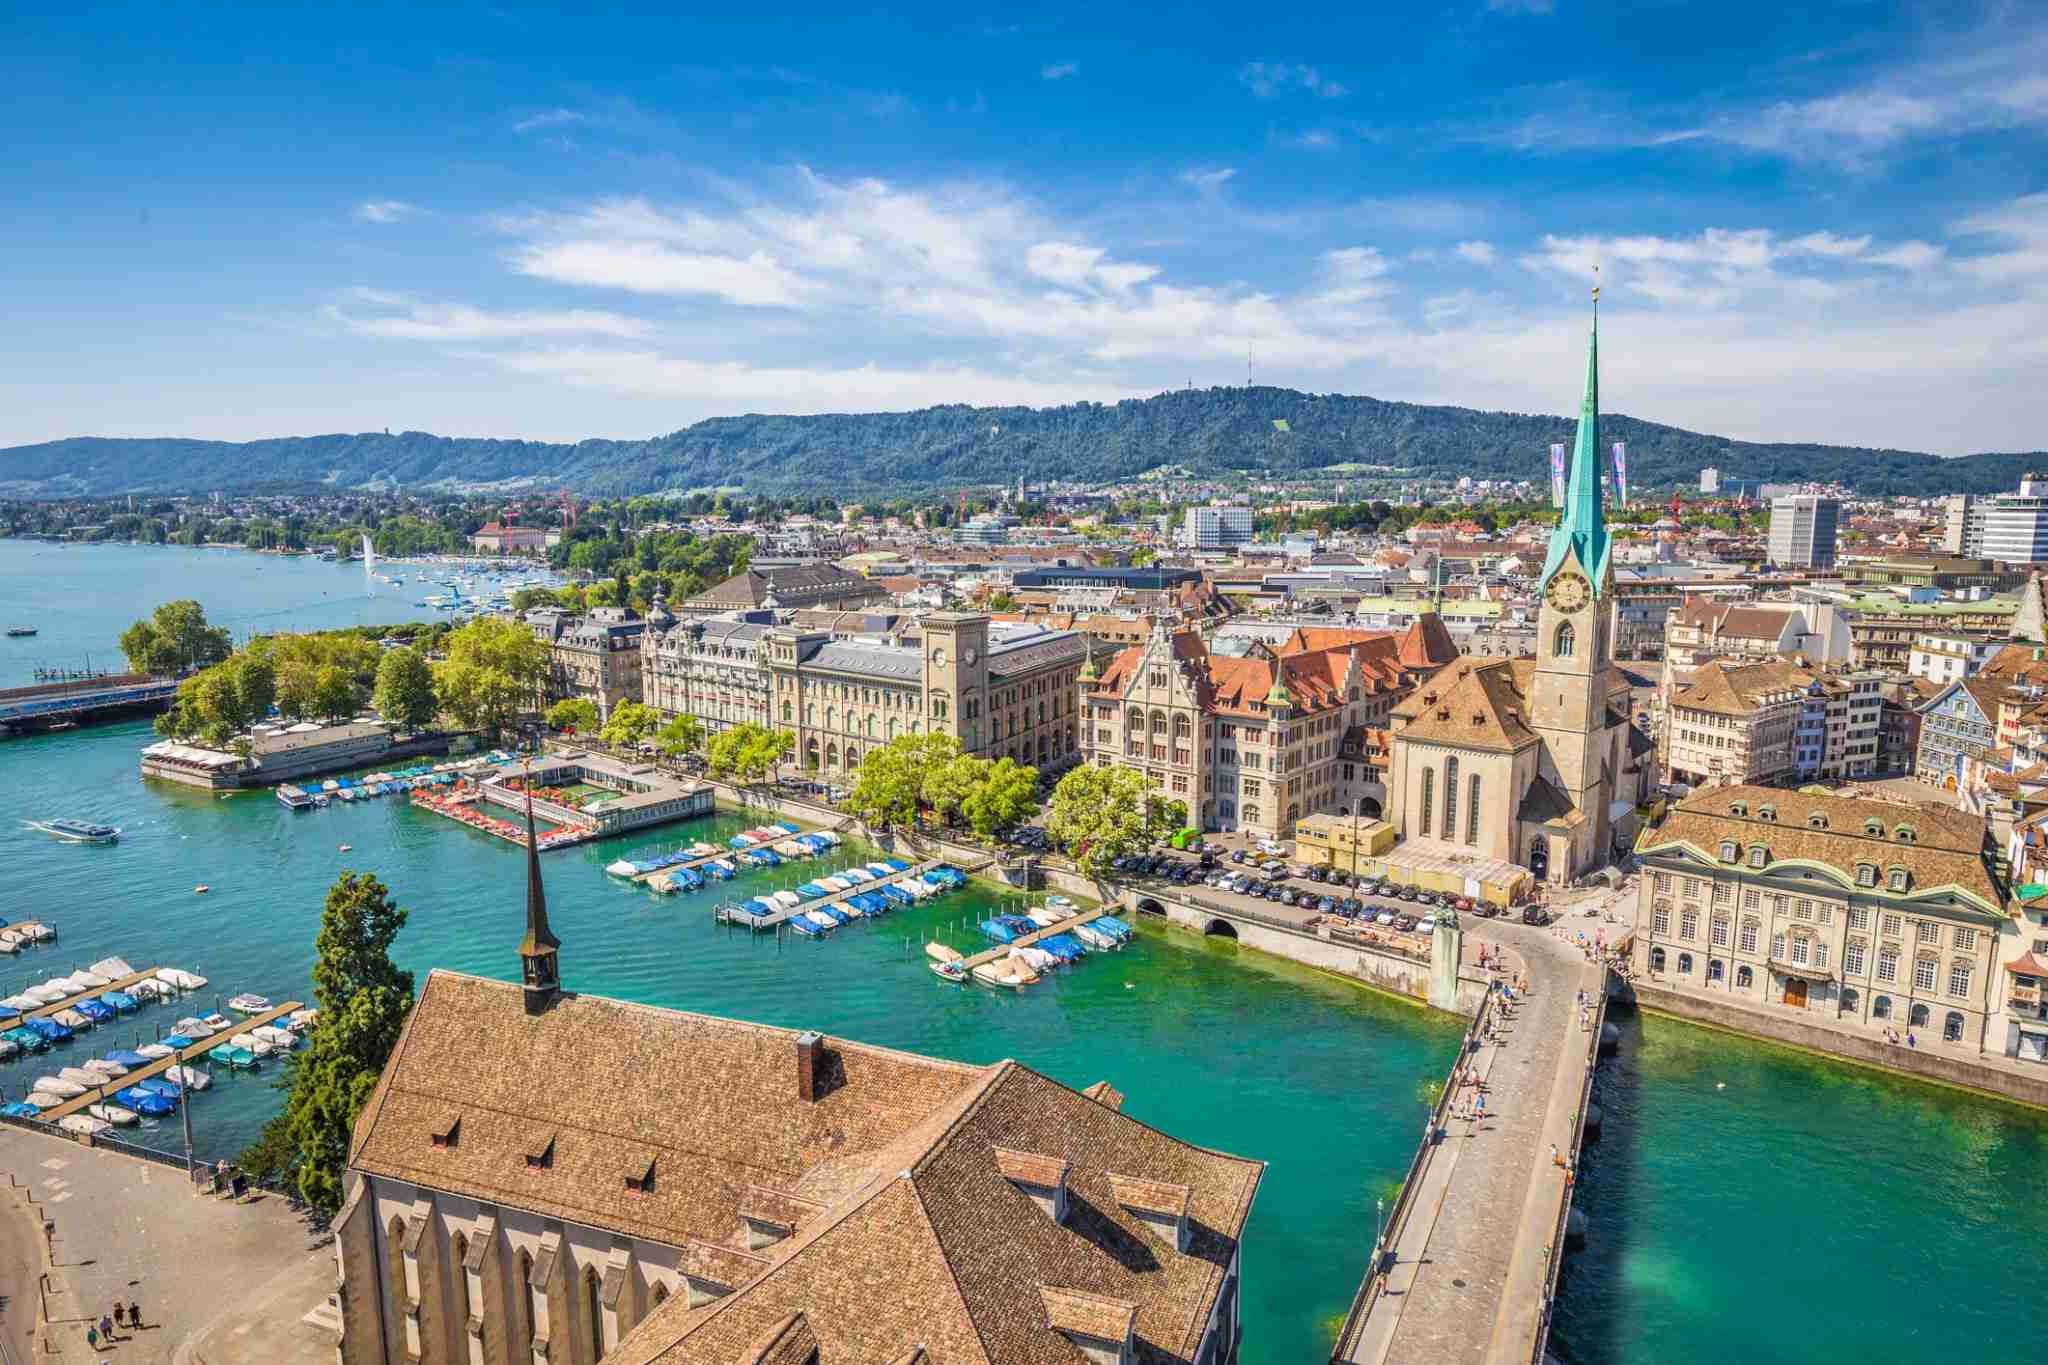 Zurich is a beautiful city to visit all year long. (Photo by bluejayphoto / Getty Images)